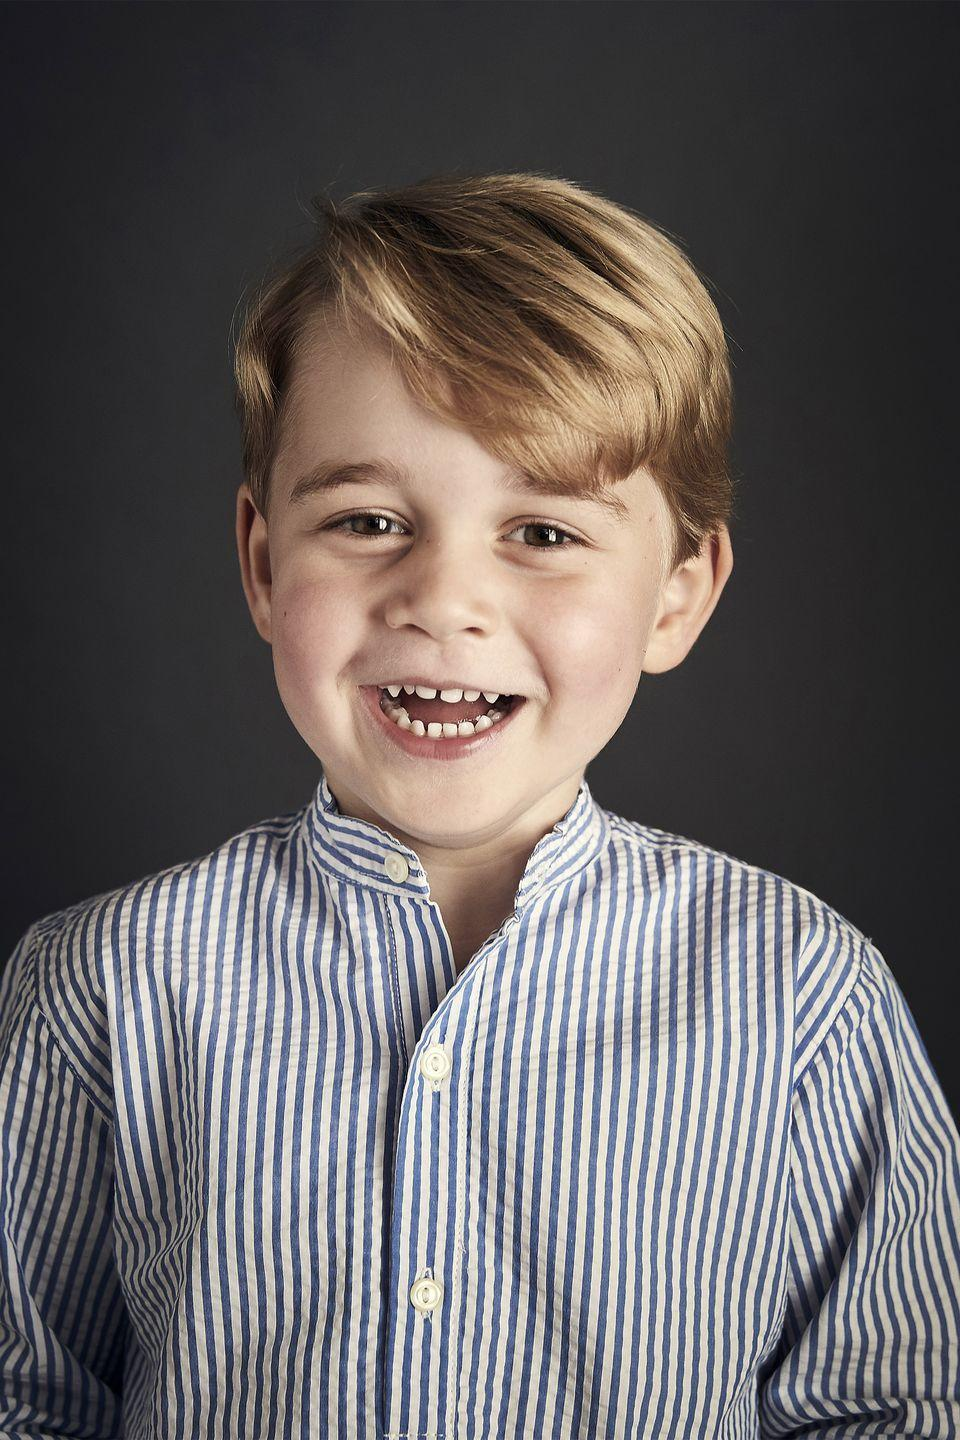 <p>Ahead of his fourth birthday, Prince George is all smiles in an official portrait taken at Kensington Palace.</p>